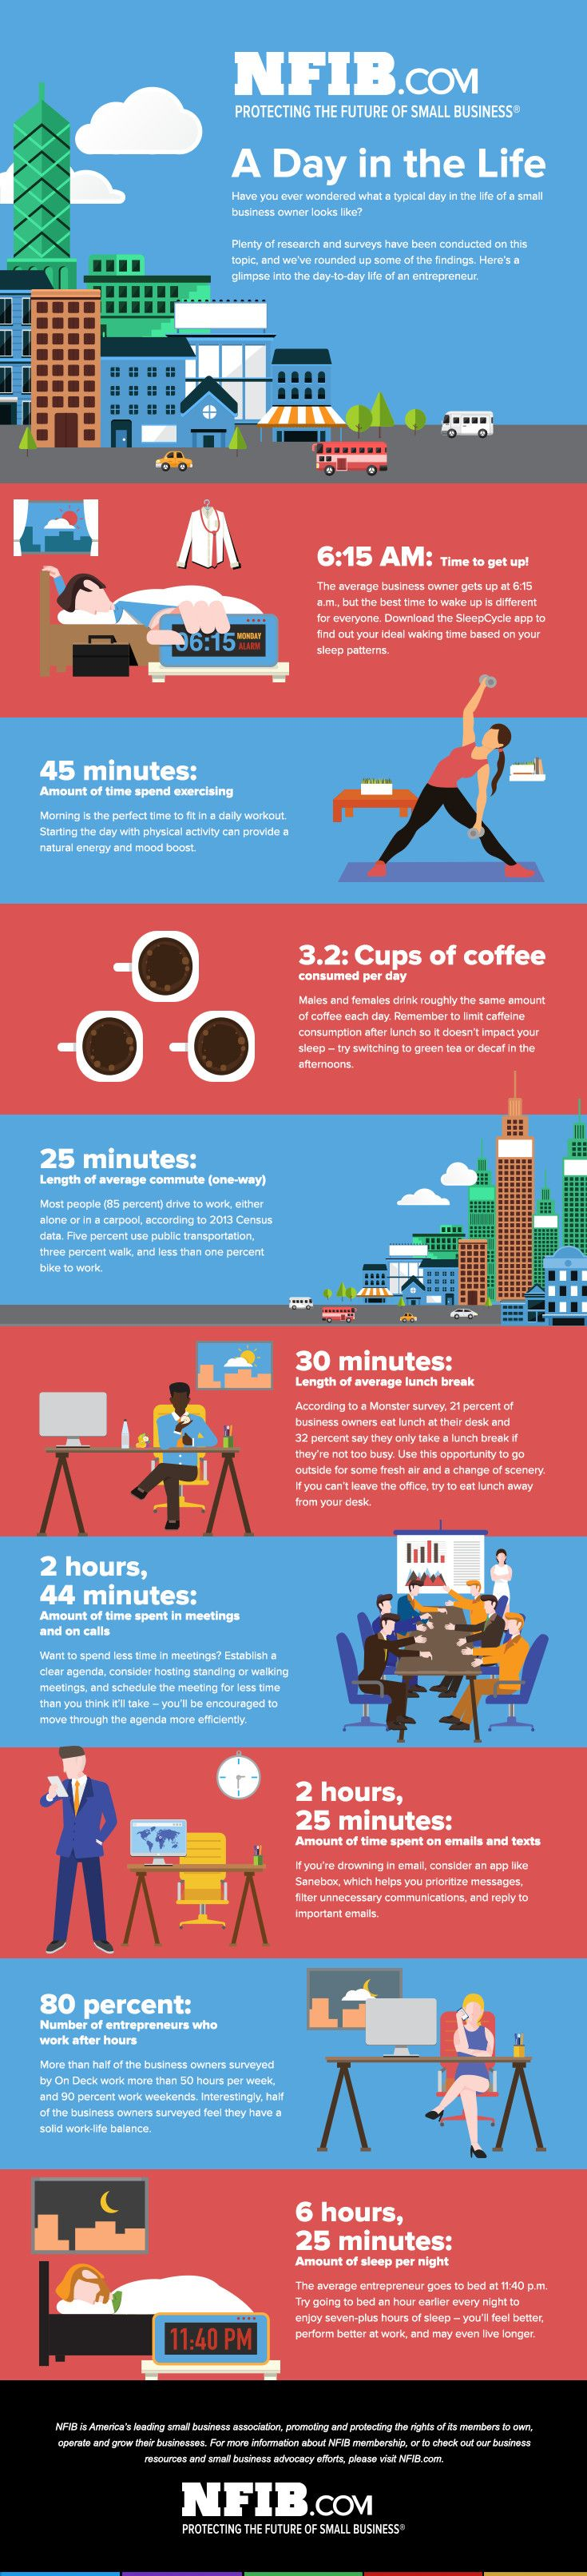 A Day in the Life of an SME Owner #infographic